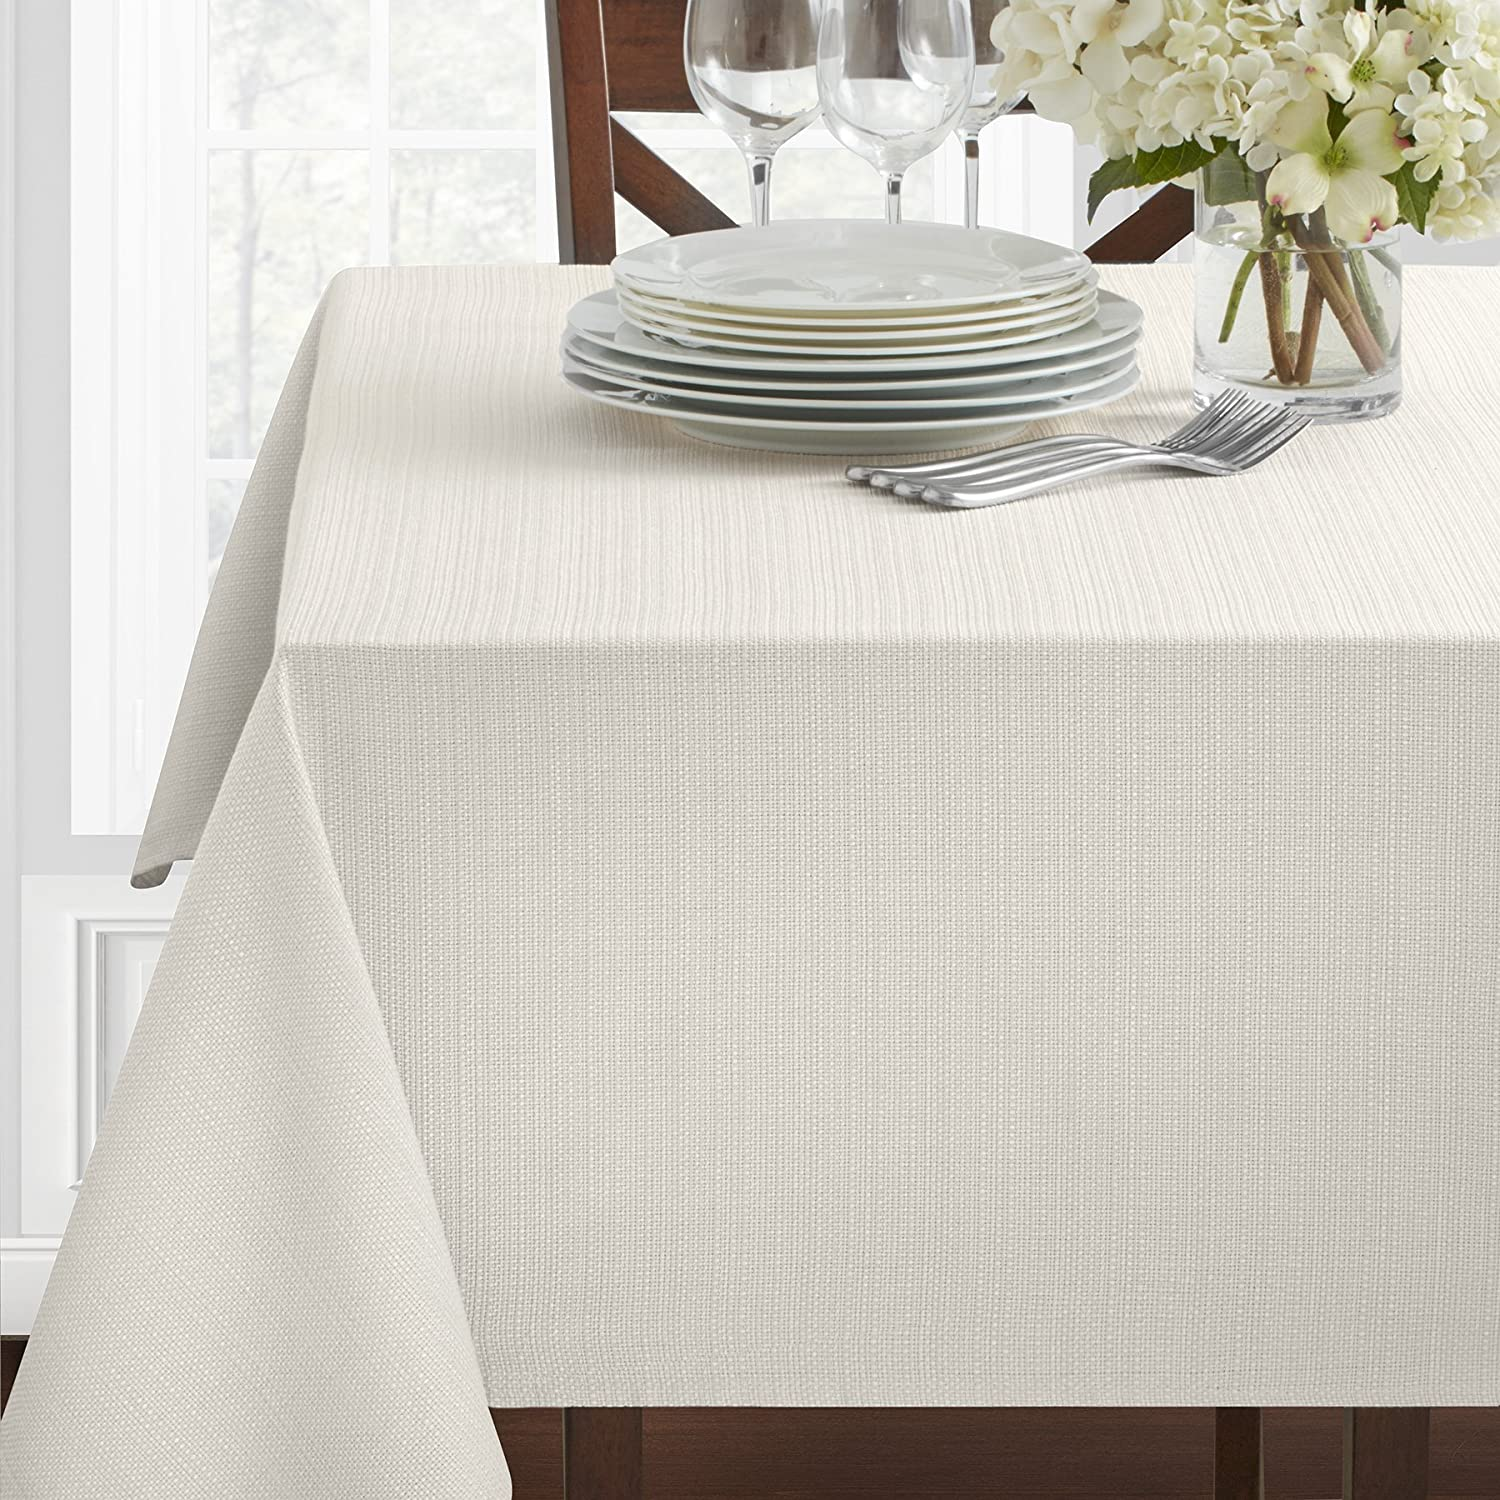 "Benson Mills Textured Fabric Tablecloth, 60"" x 120"" Rectangular, White"